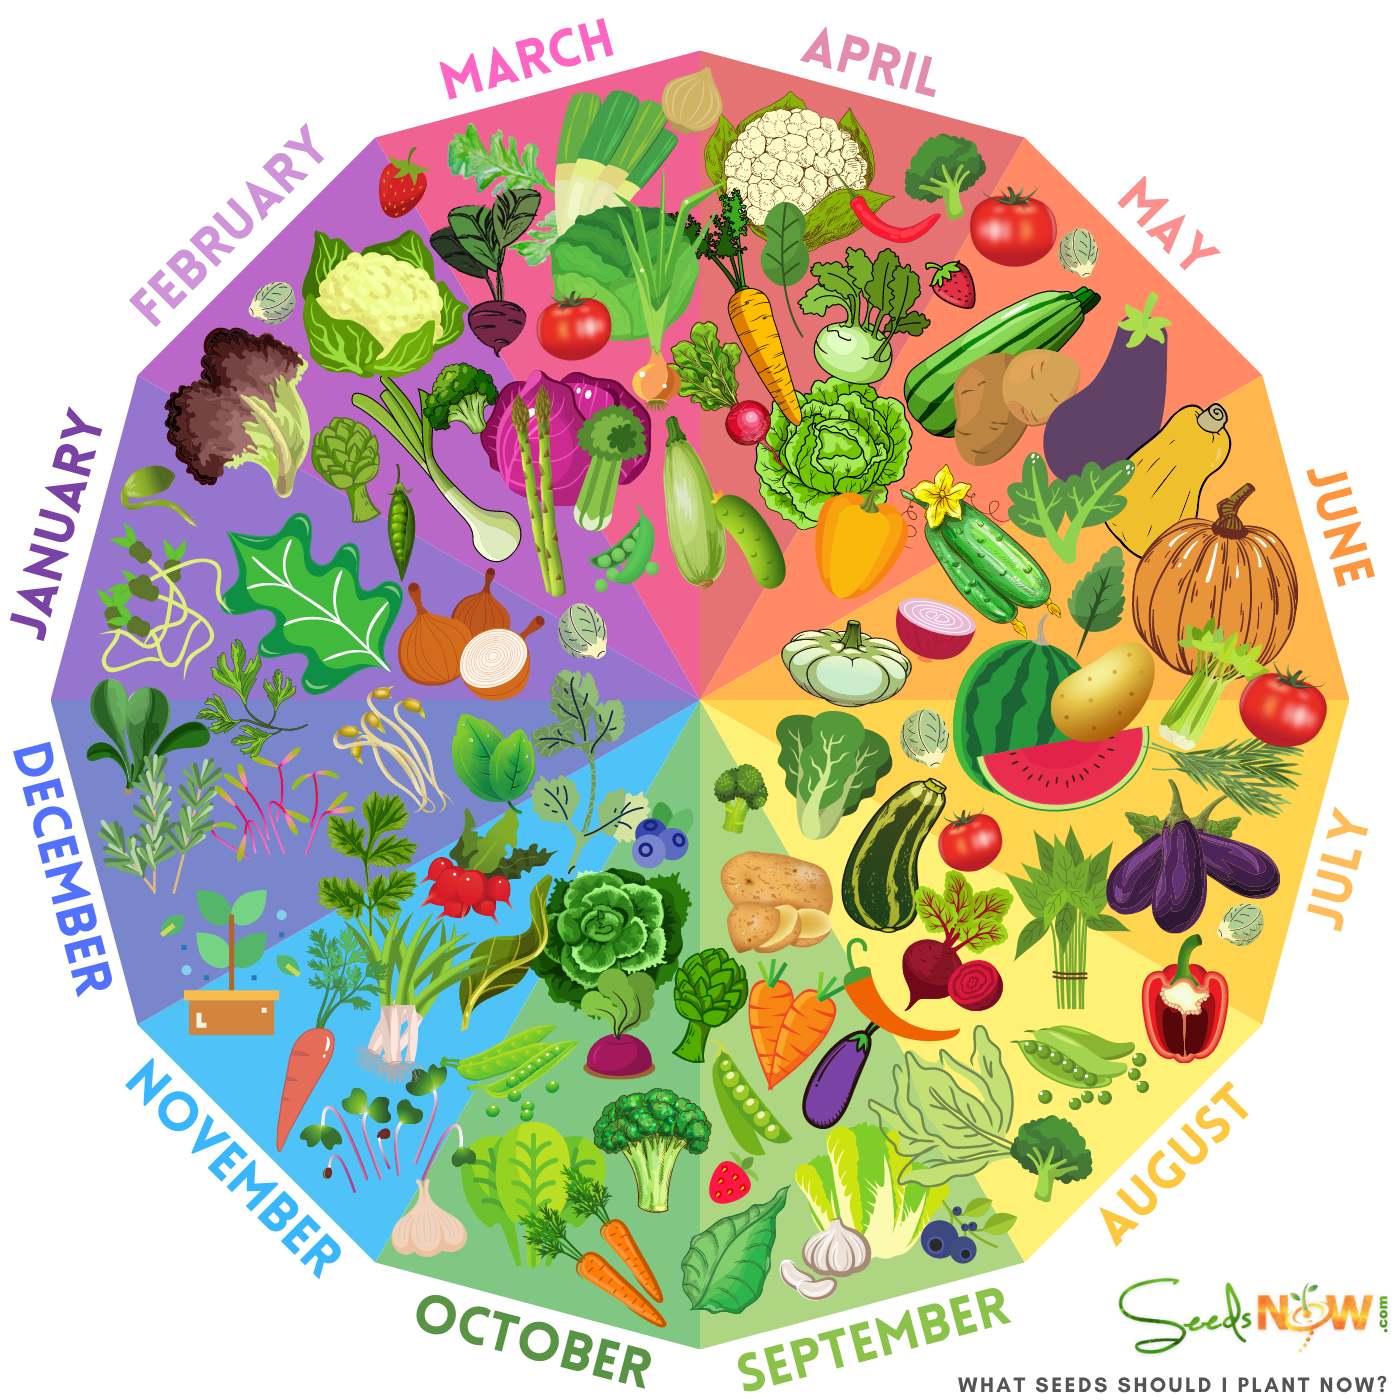 whenis the best time to plant your garden